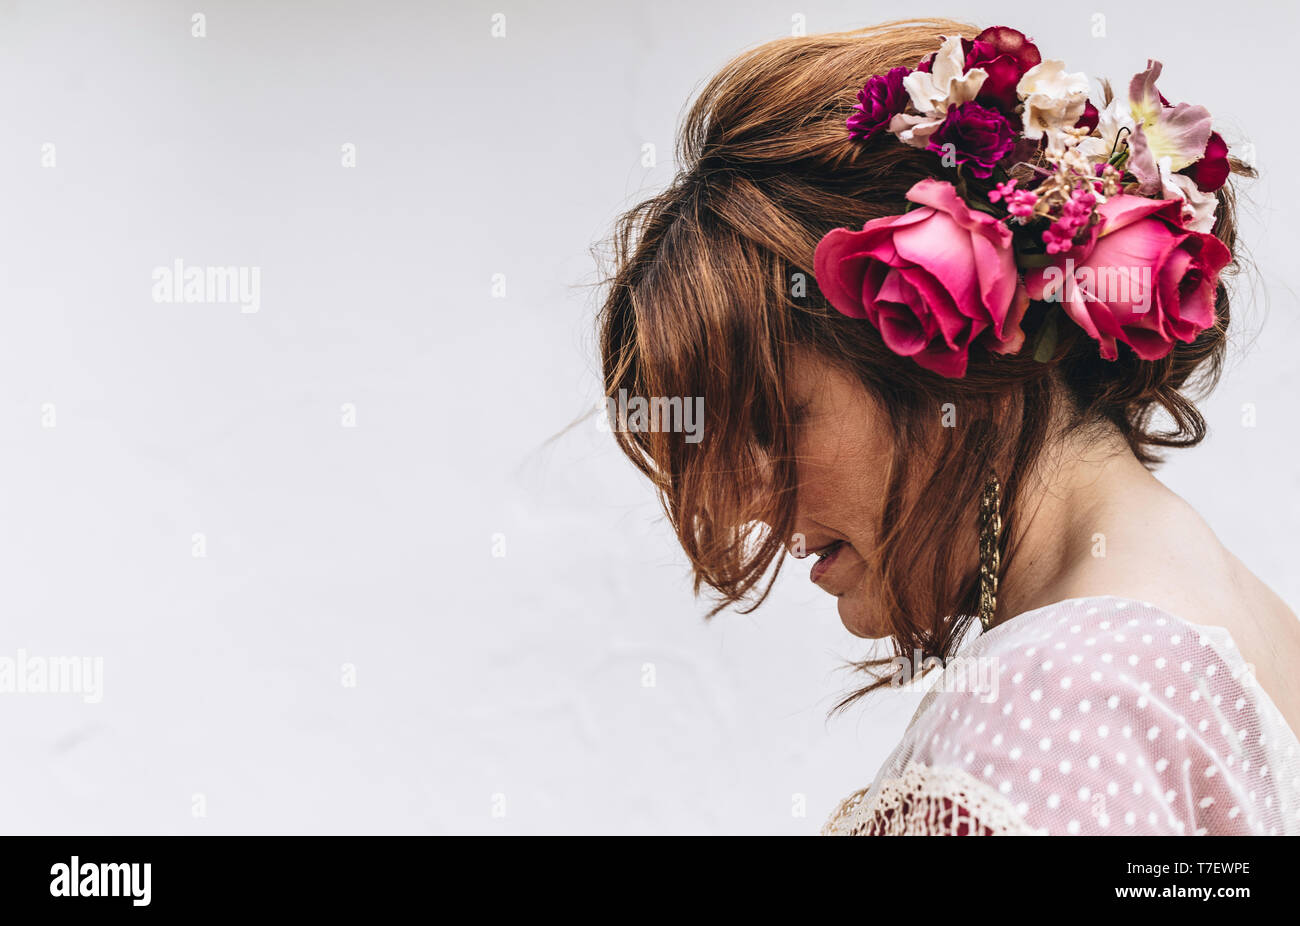 Beauty shot of a flamenco dancer with nice hairstyle and flowers in her hair on white background. April fair 2019 Seville - Stock Image